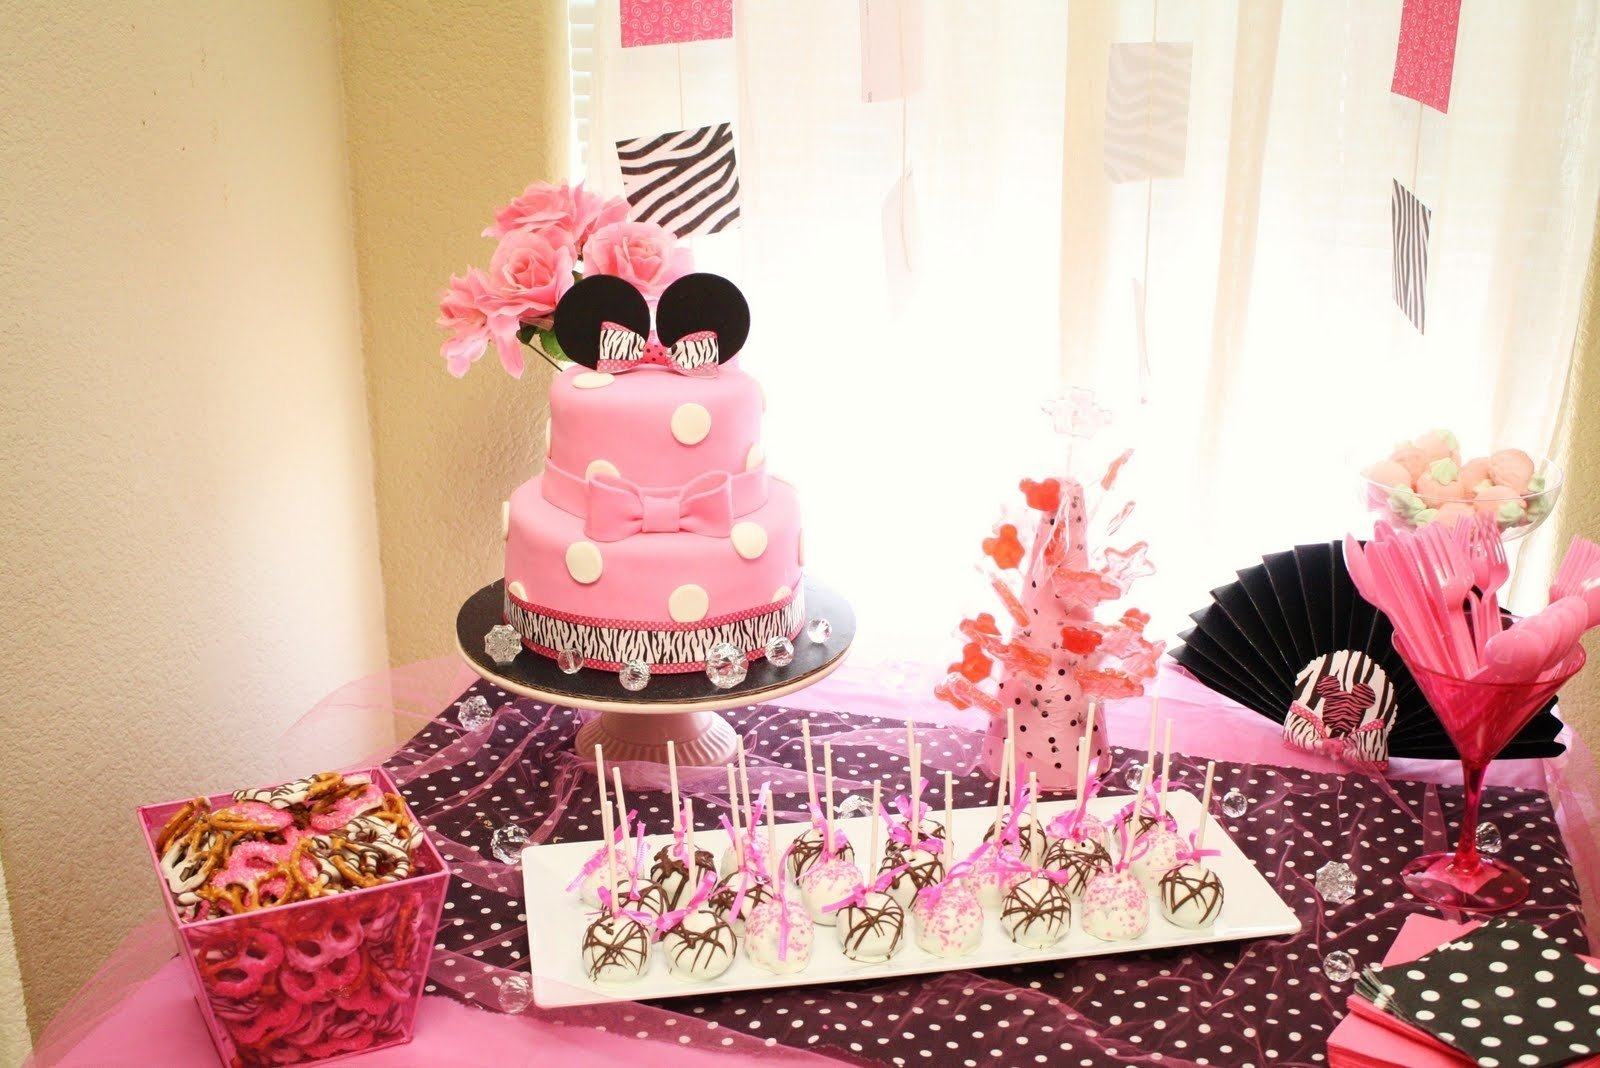 10 Fashionable Baby Minnie Mouse 1St Birthday Party Ideas minnie mouse party ideas pinterest minnie mouse decoration ideas